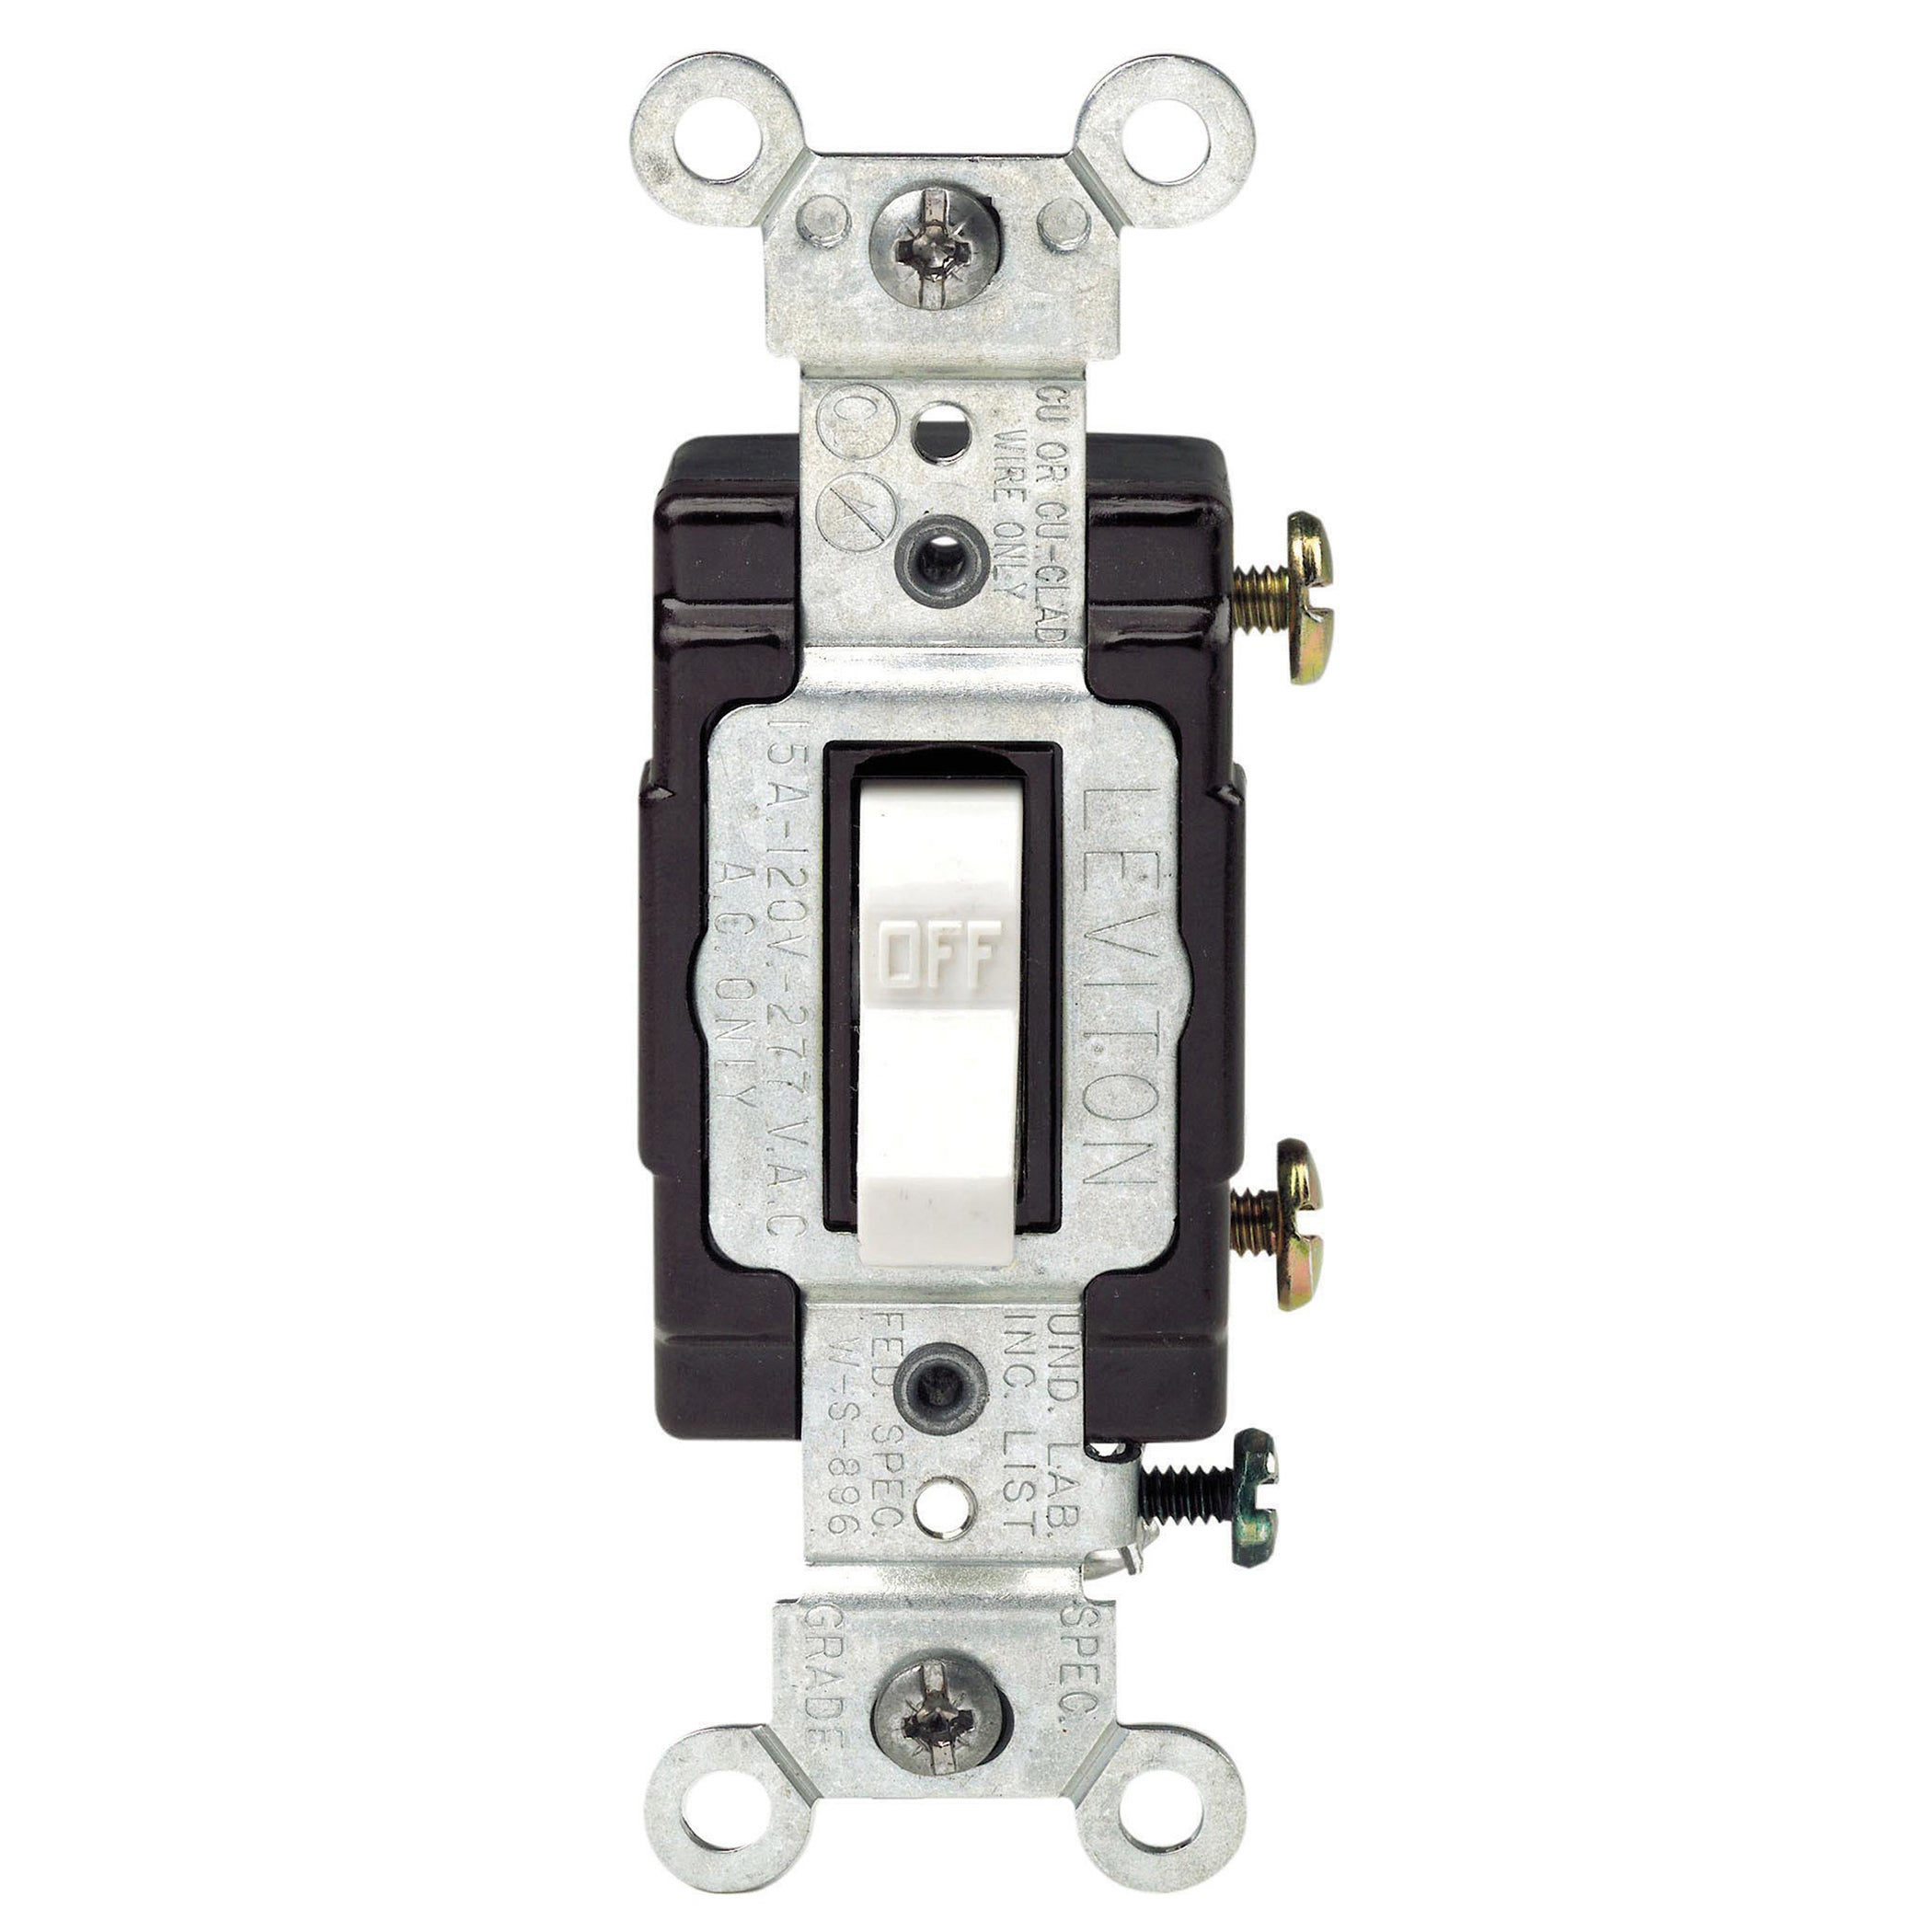 Leviton C22-05501-LHW 15 Amp White Wired Light Toggle Swi...